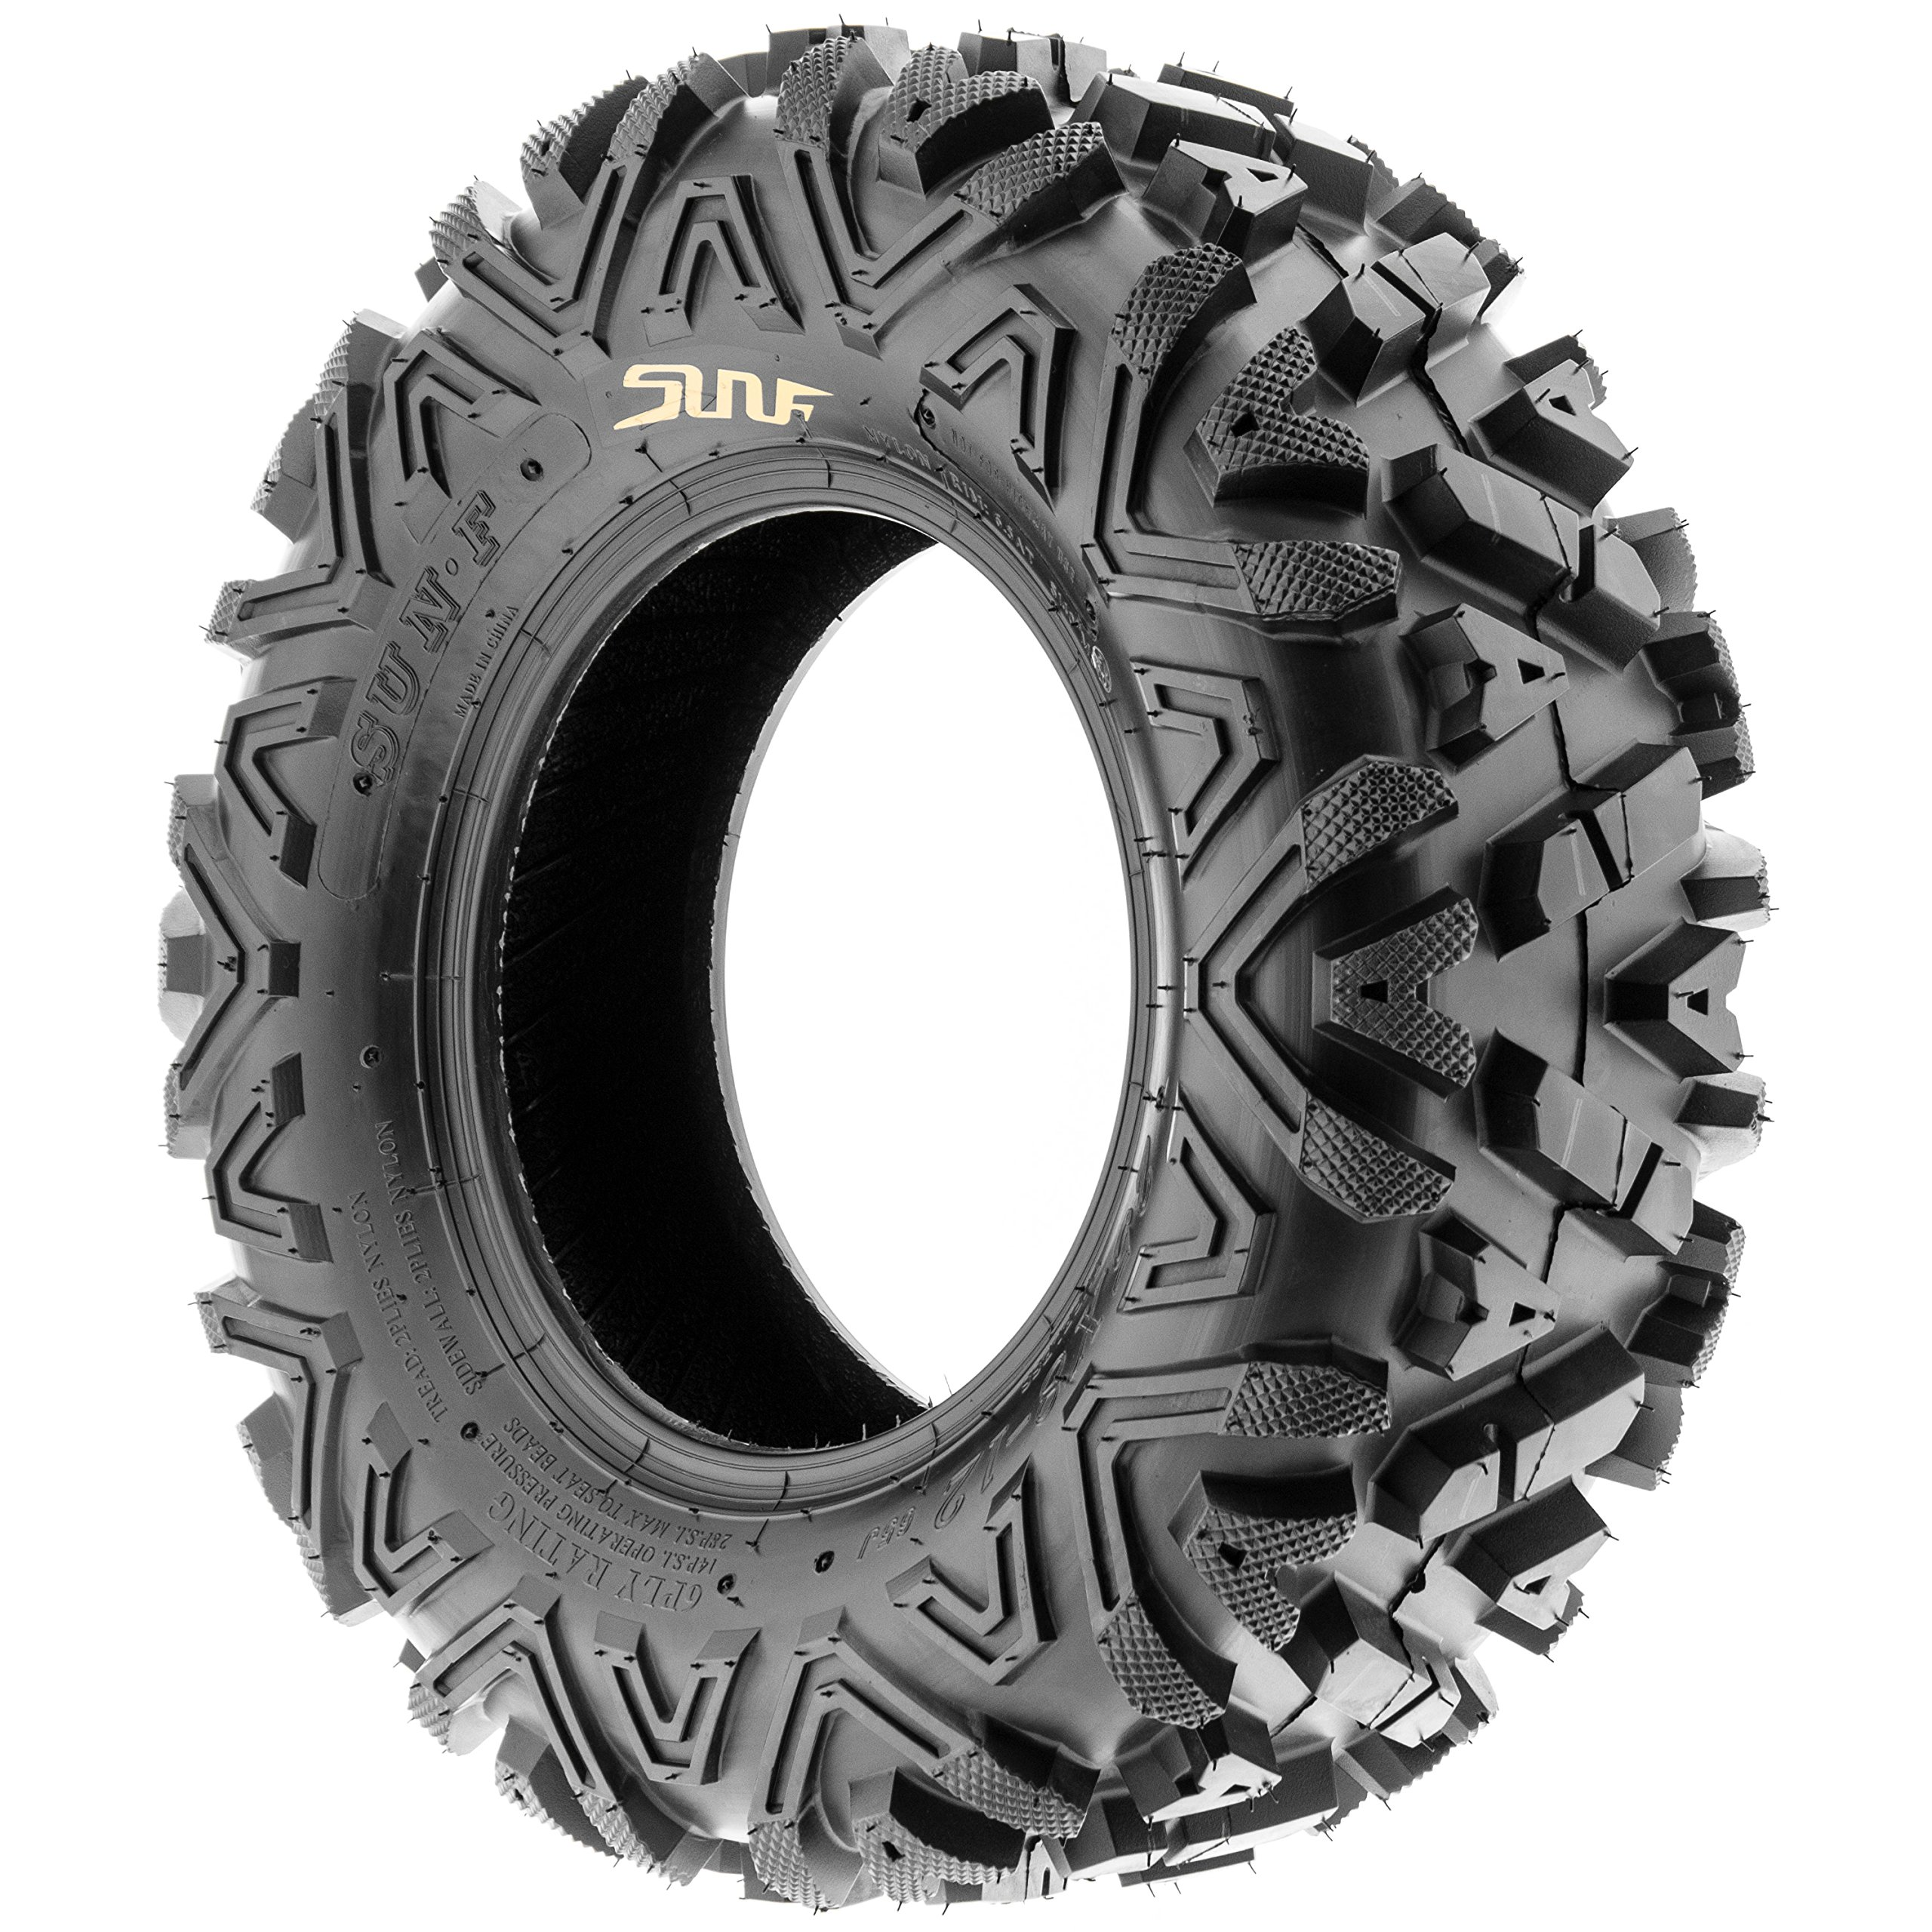 SunF 29x9-14 29x9x14 ATV UTV All Terrain AT Tire 6 PR A033 (Single) by SunF (Image #8)